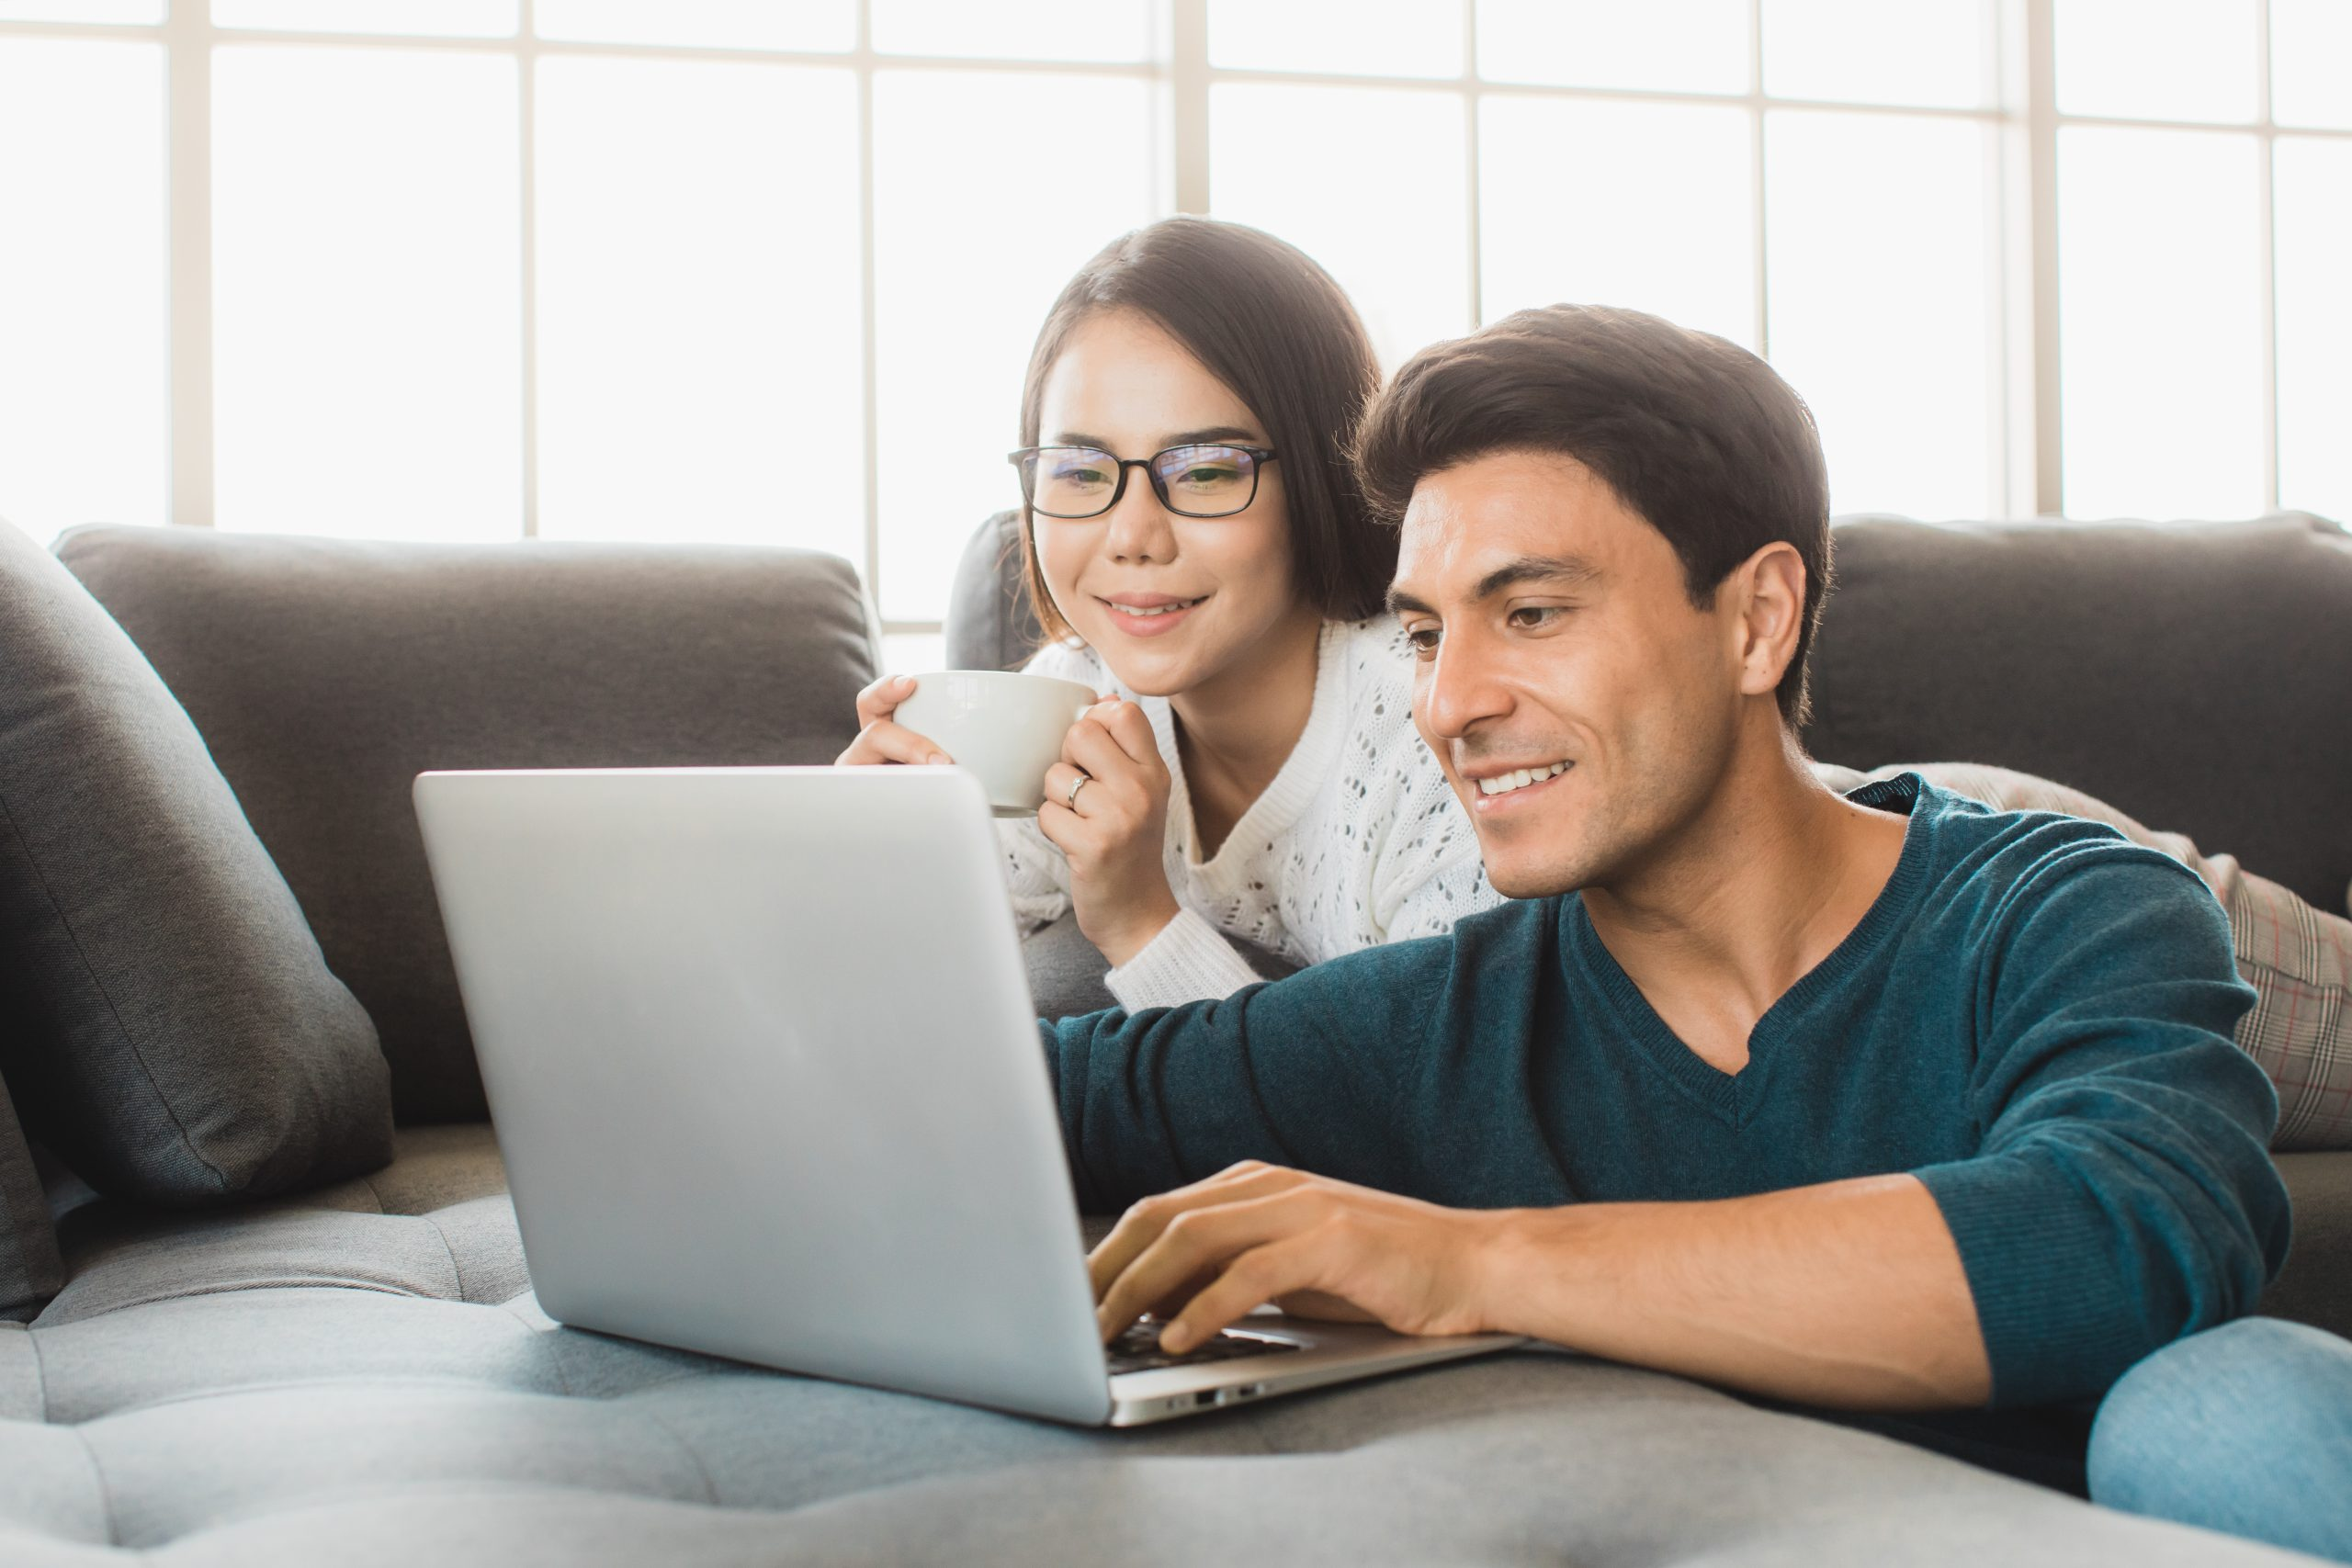 File Jointly Or Separately? What You Need to Know About Filing Taxes with Your Spouse